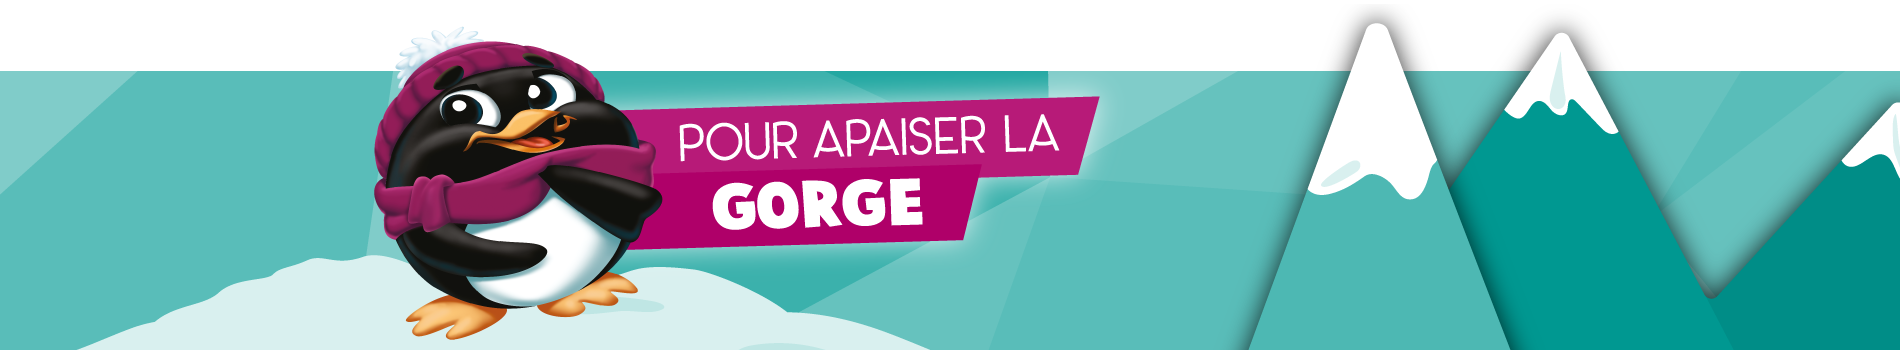 hiver20-21_banner-1-gorge